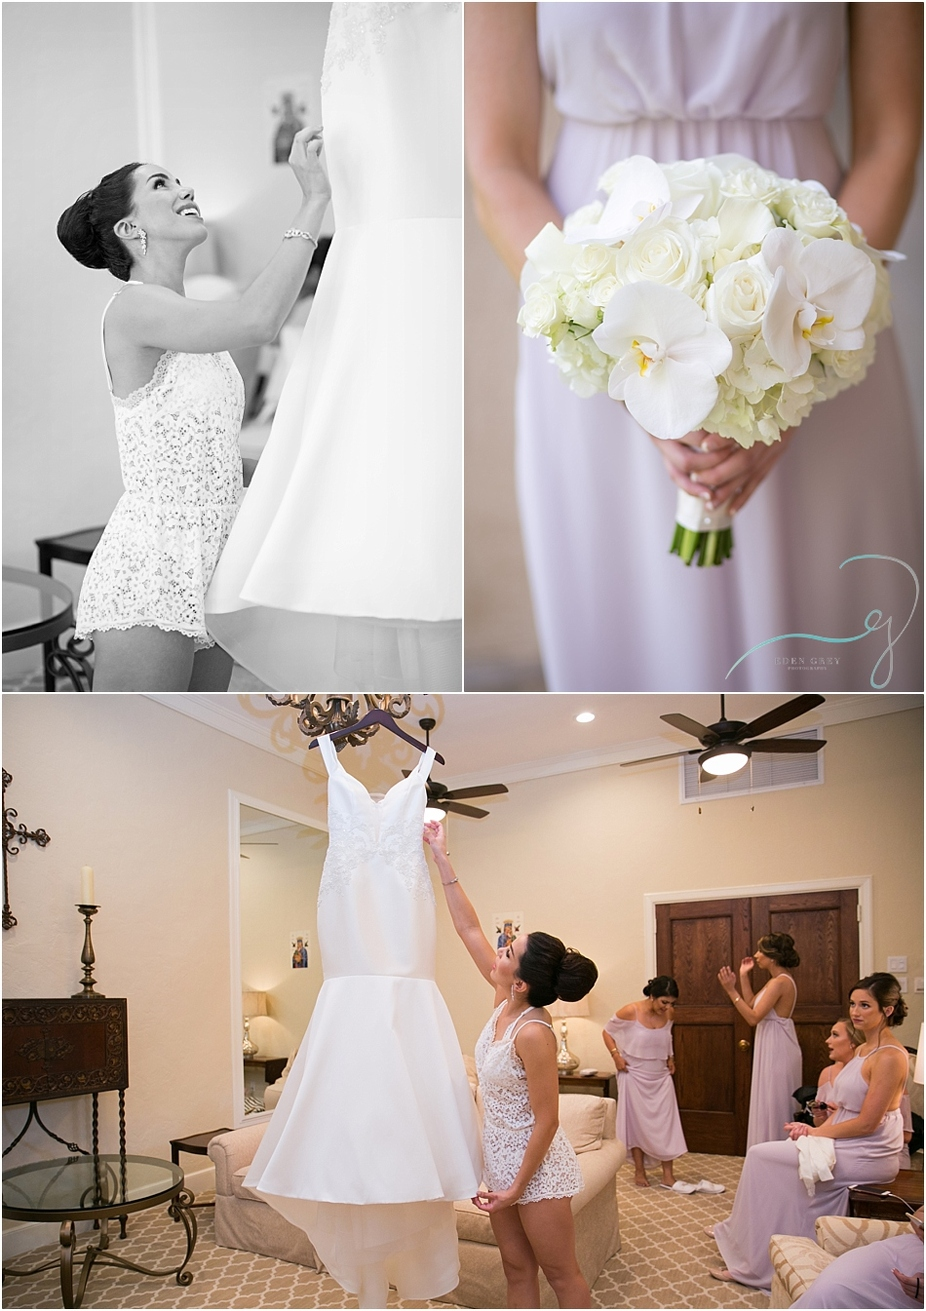 Bridal rompers and orchid bouquets